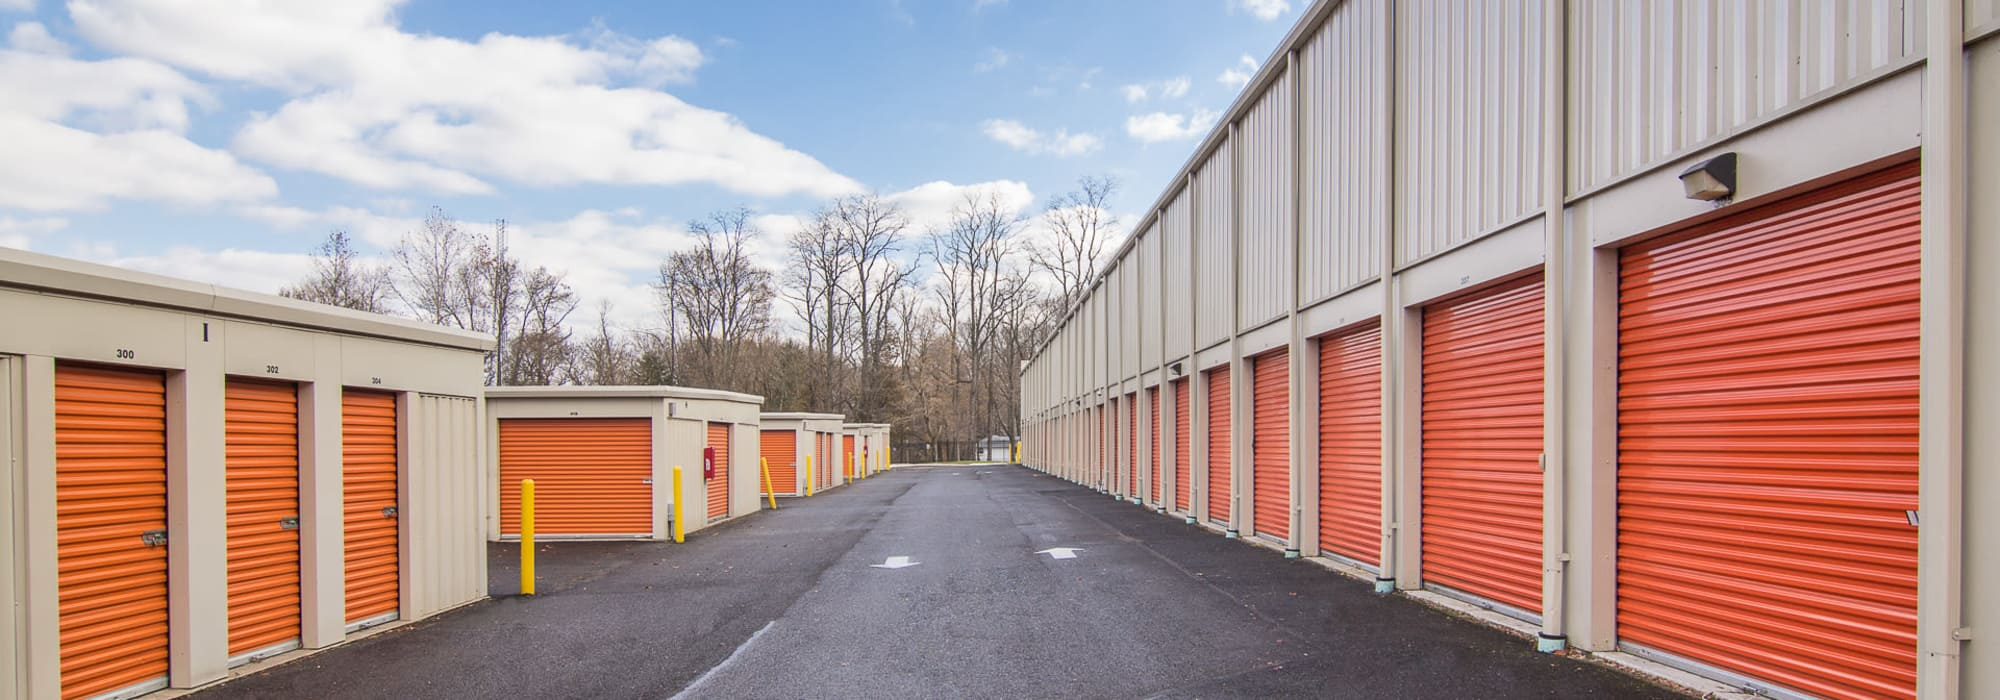 Prime Storage in Bordentown, NJ